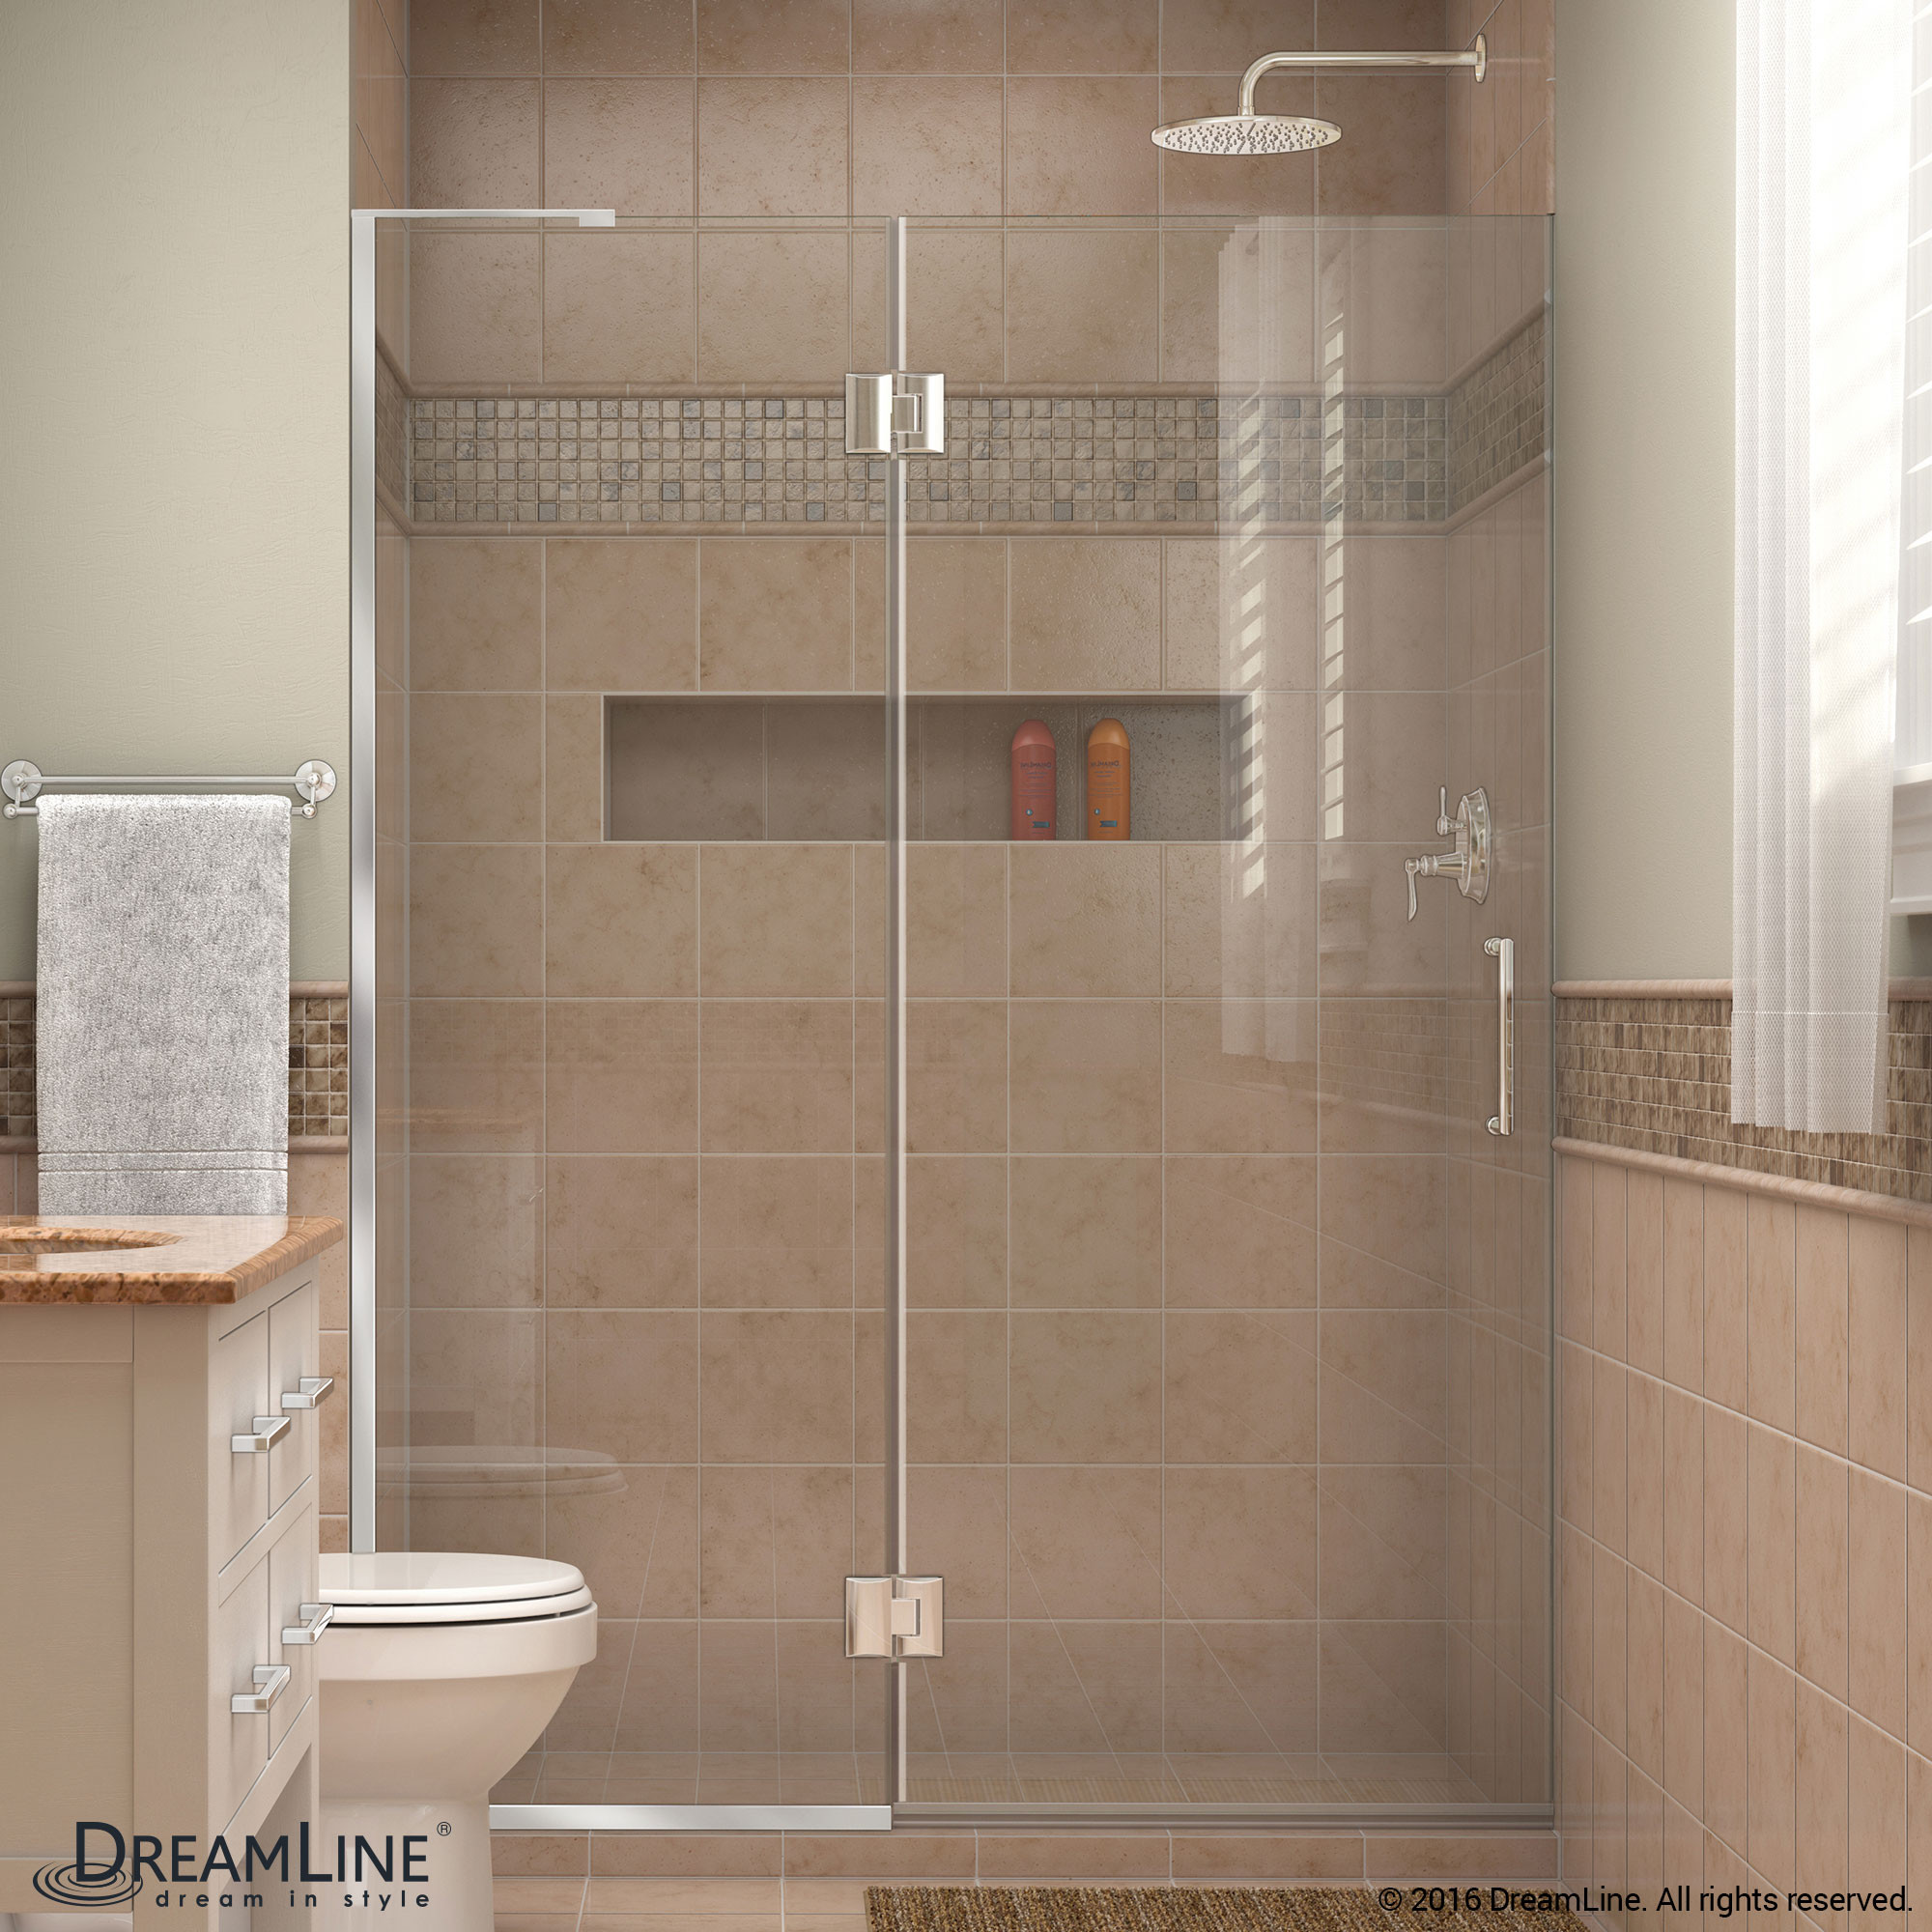 DreamLine D32472L-01 Chrome Unidoor-X Hinged Shower Door With Left-wall Bracket